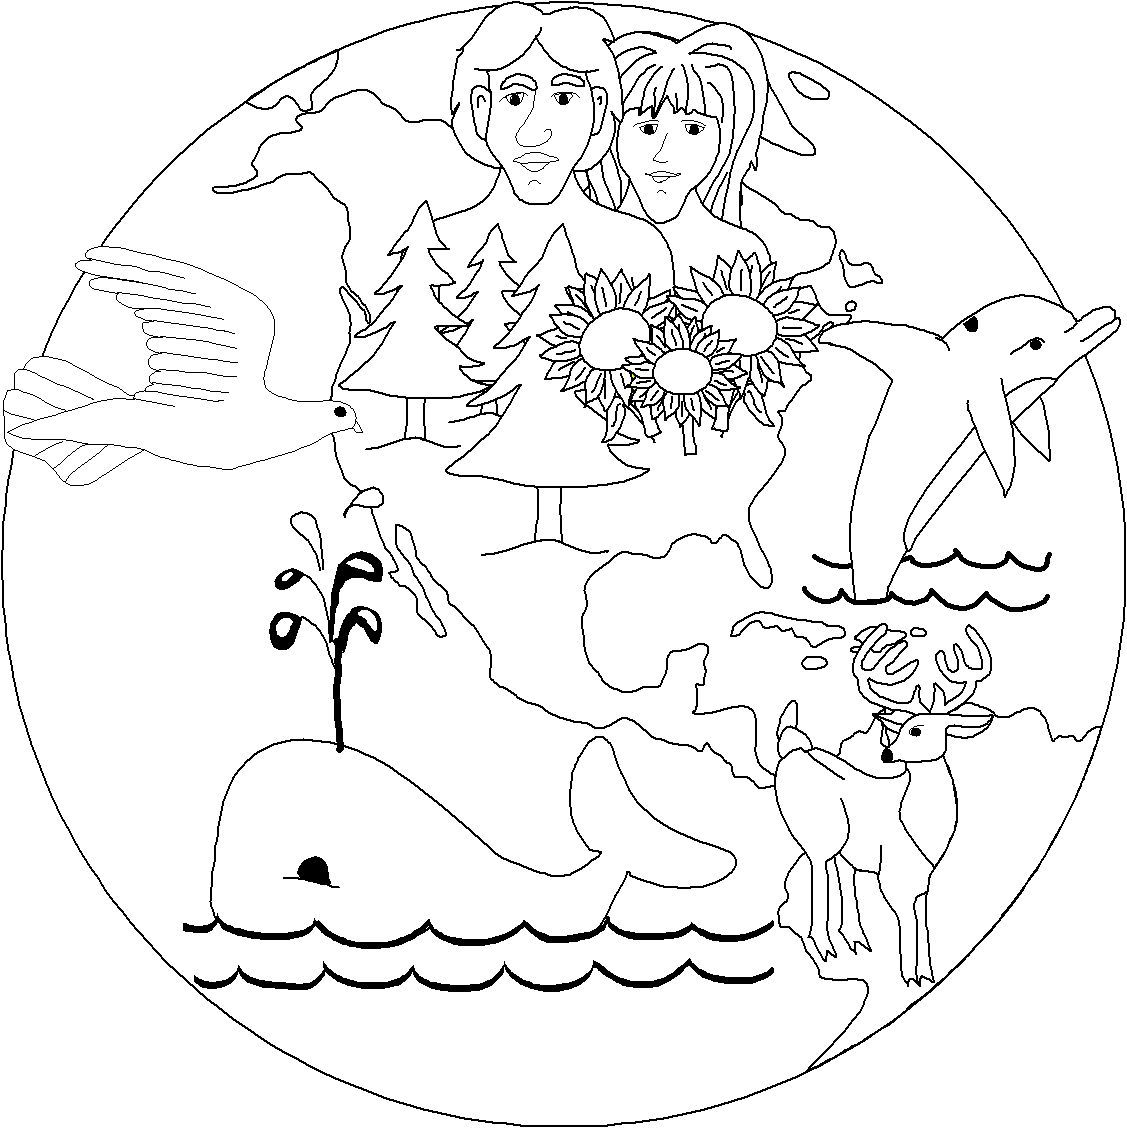 Mothers day coloring sheets for sunday school - Creation Coloring Pages Coloring Book Pages Coloring Sheets Bible Stories For Kids Bible Crafts Quiet Books Apostles Creed Pastor Sunday School